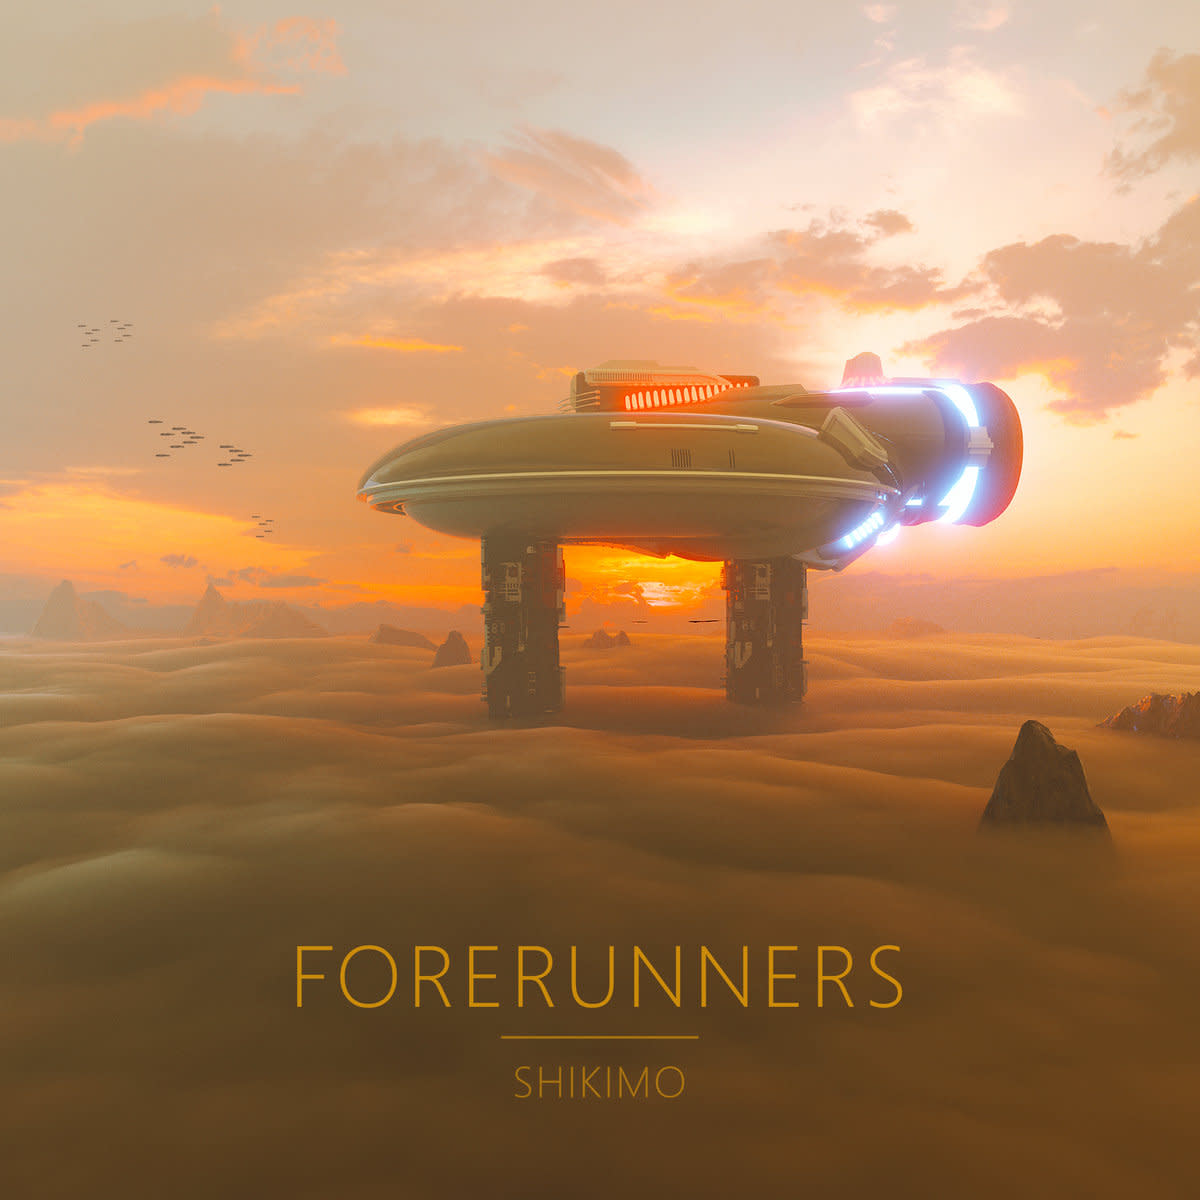 synth-album-review-forerunners-by-shikimo